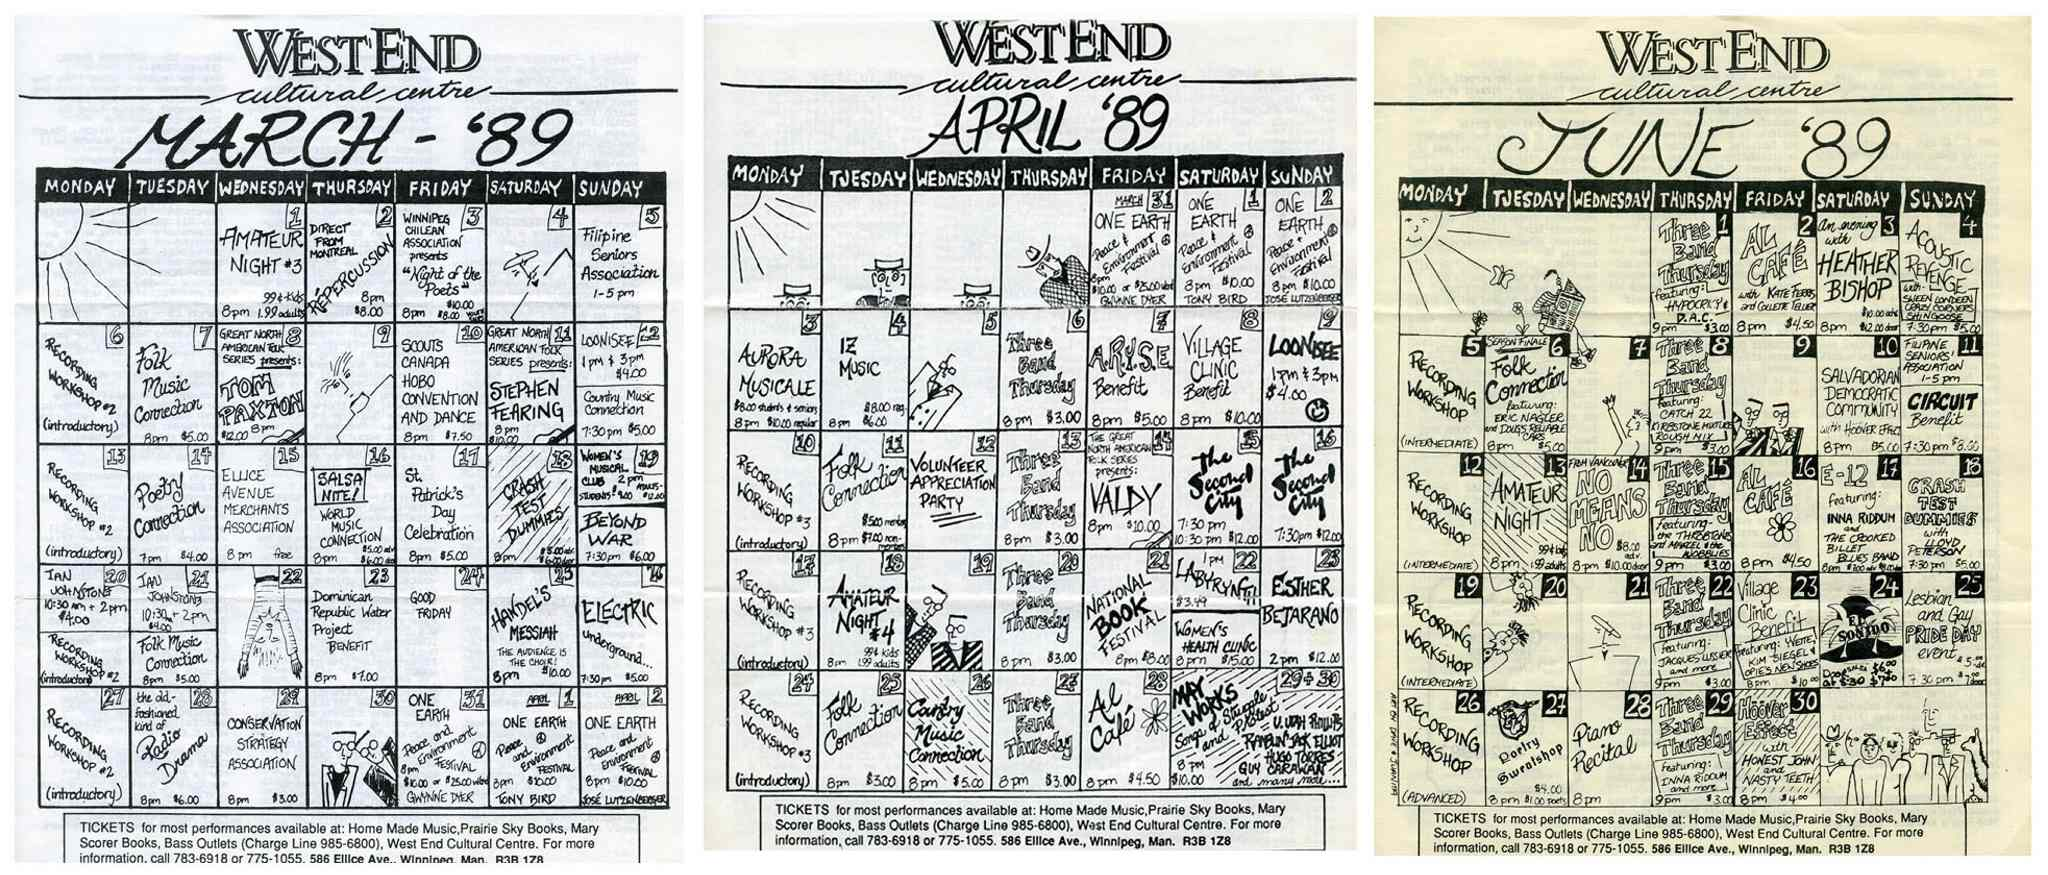 An event takes place at the WECC almost every evening in the spring of 1989.